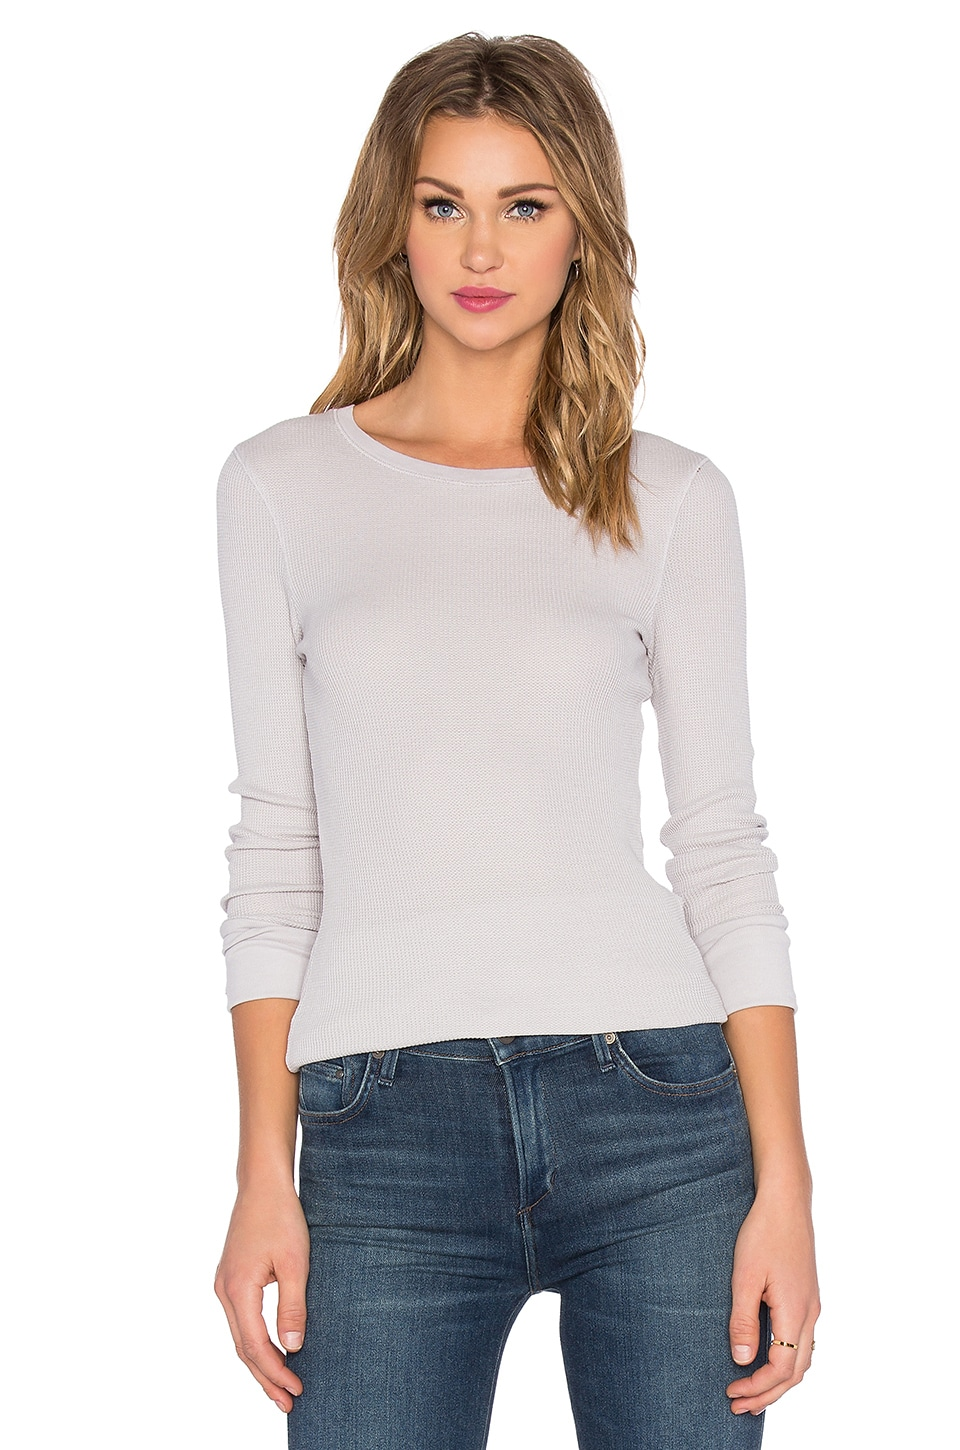 Bobi Thermal Long Sleeve Tee in Icy Grey